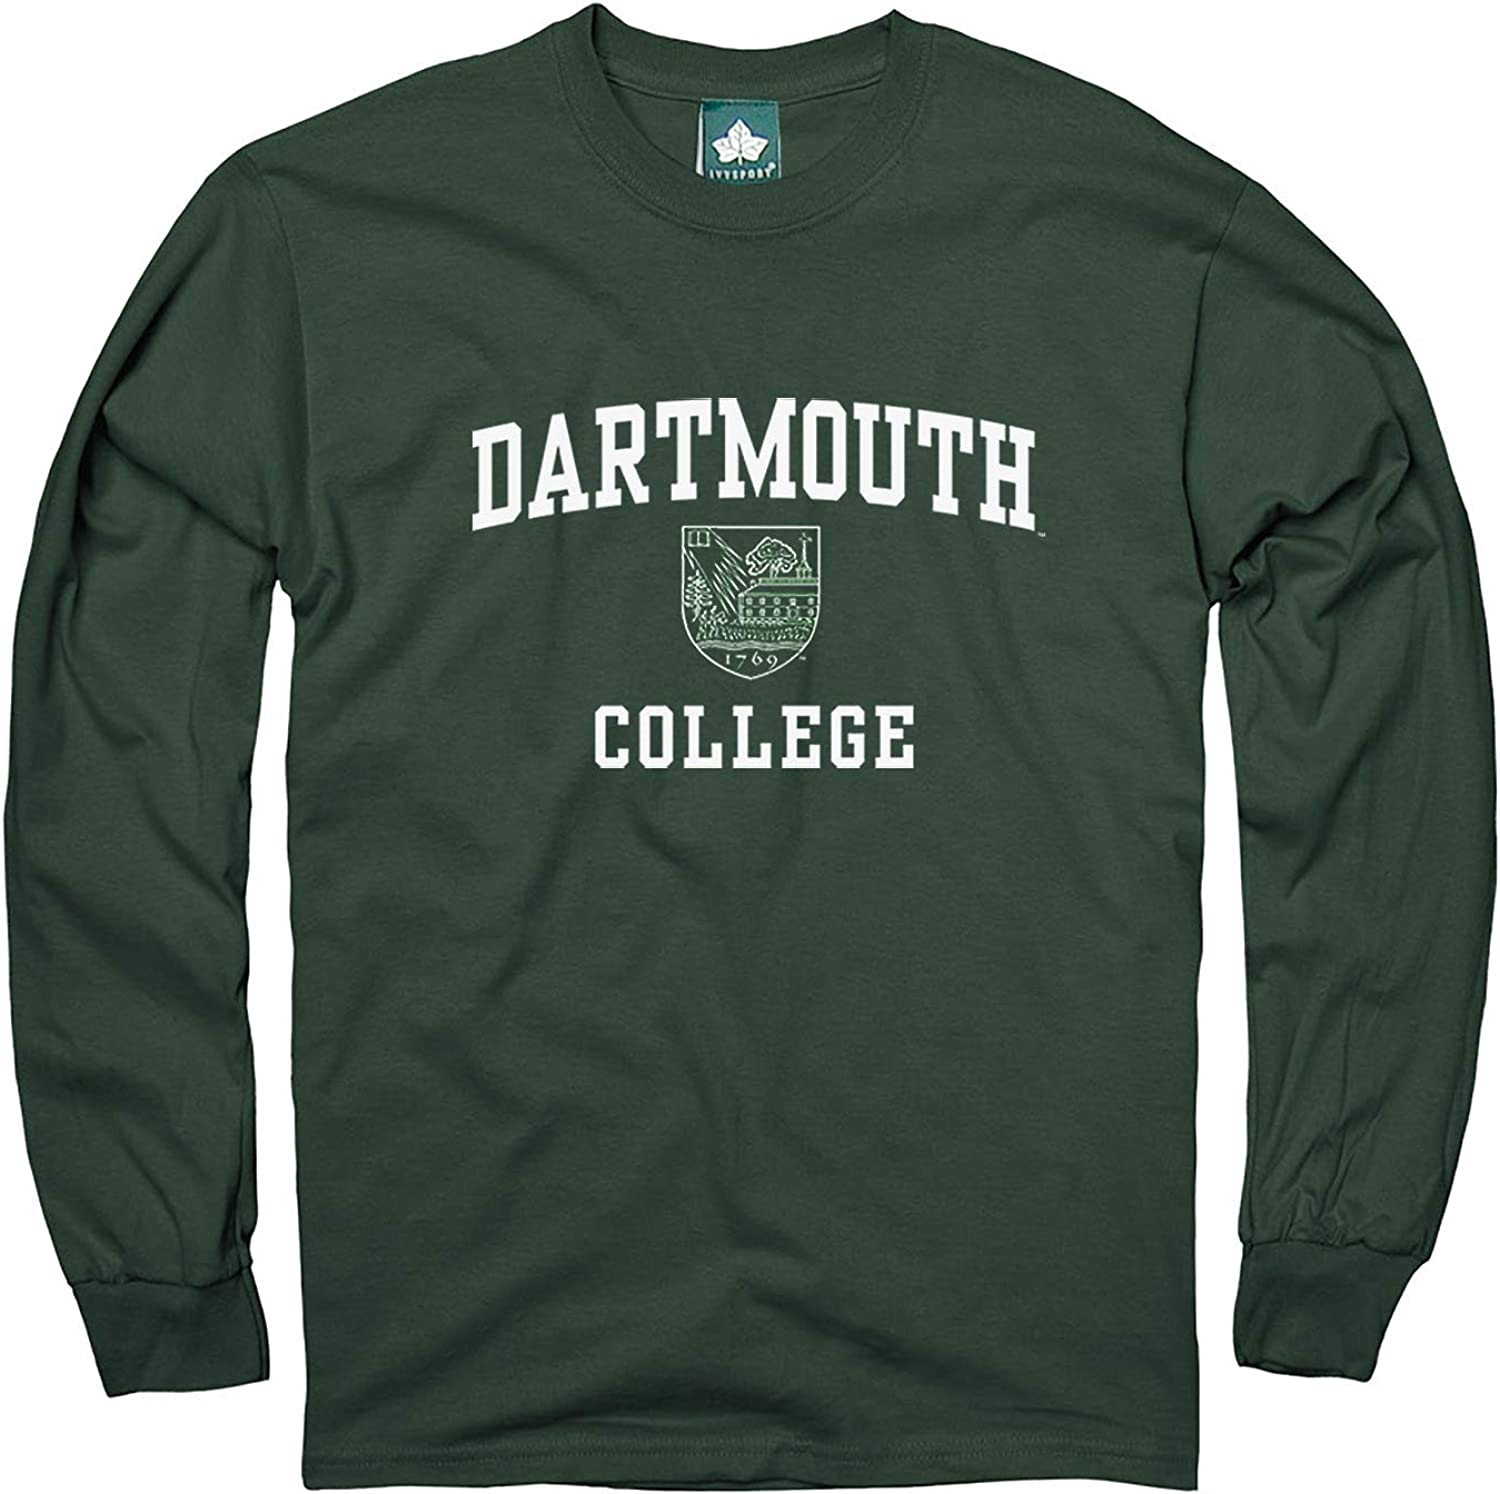 Ivysport Cotton Long Sleeve T-Shirt with Crest Logo School Color NCAA Colleges